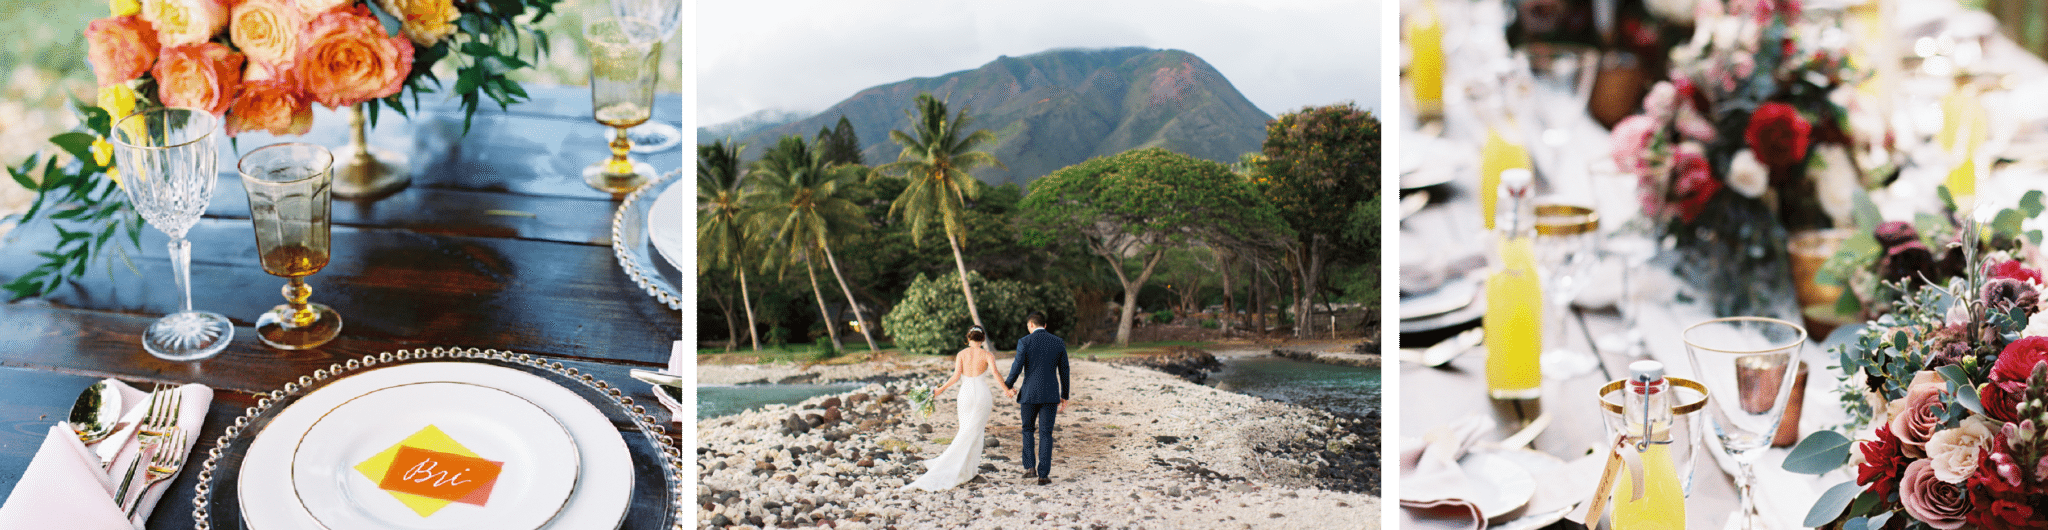 Wedding Details in Hawaii | Wedding Planners in Maui | Maui's Angels